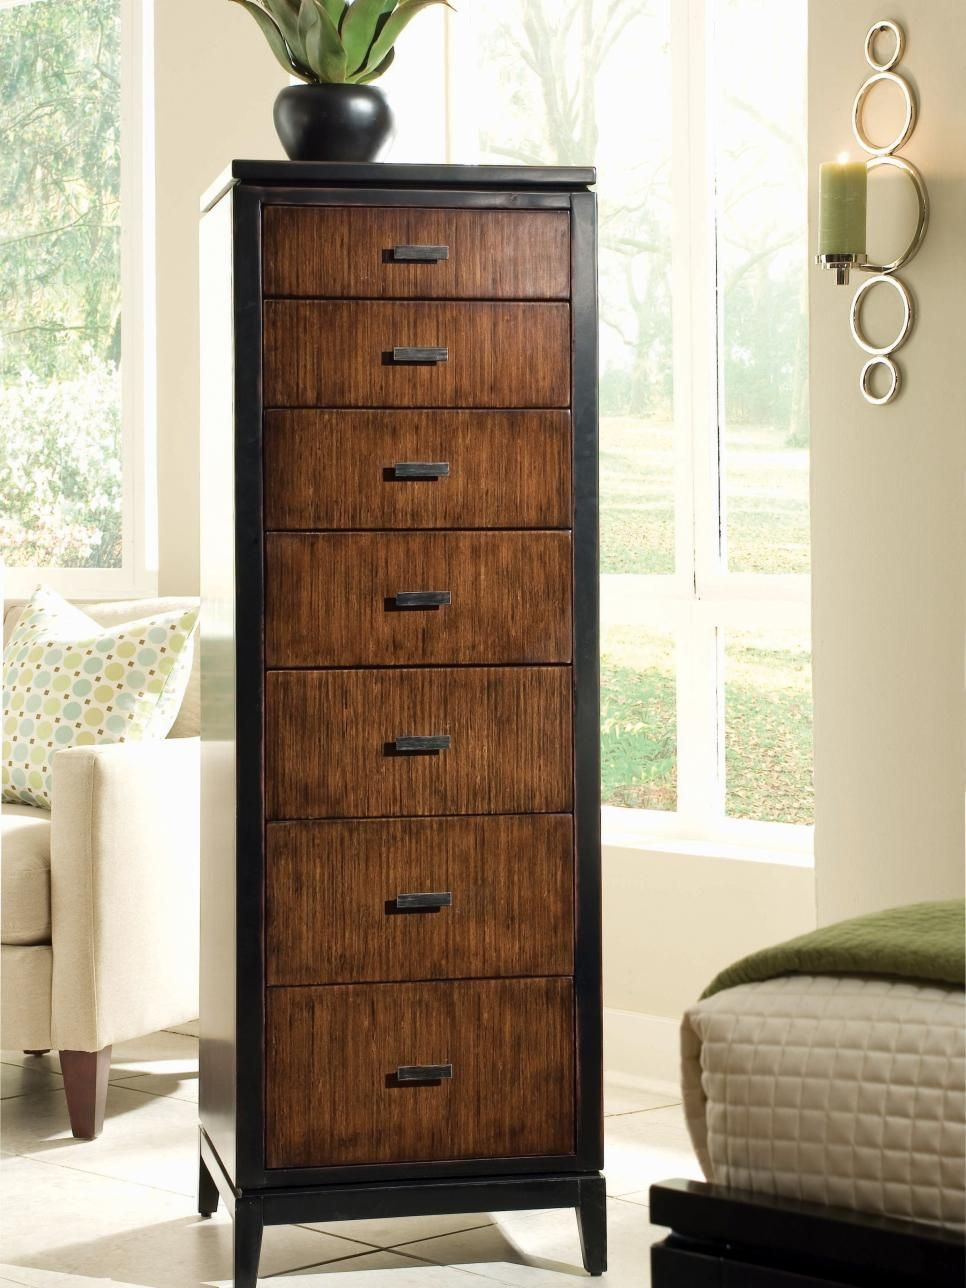 Charmant Case Goods Are Wood Furniture Pieces That Provide Storage Space. Often Used  In Dining Rooms